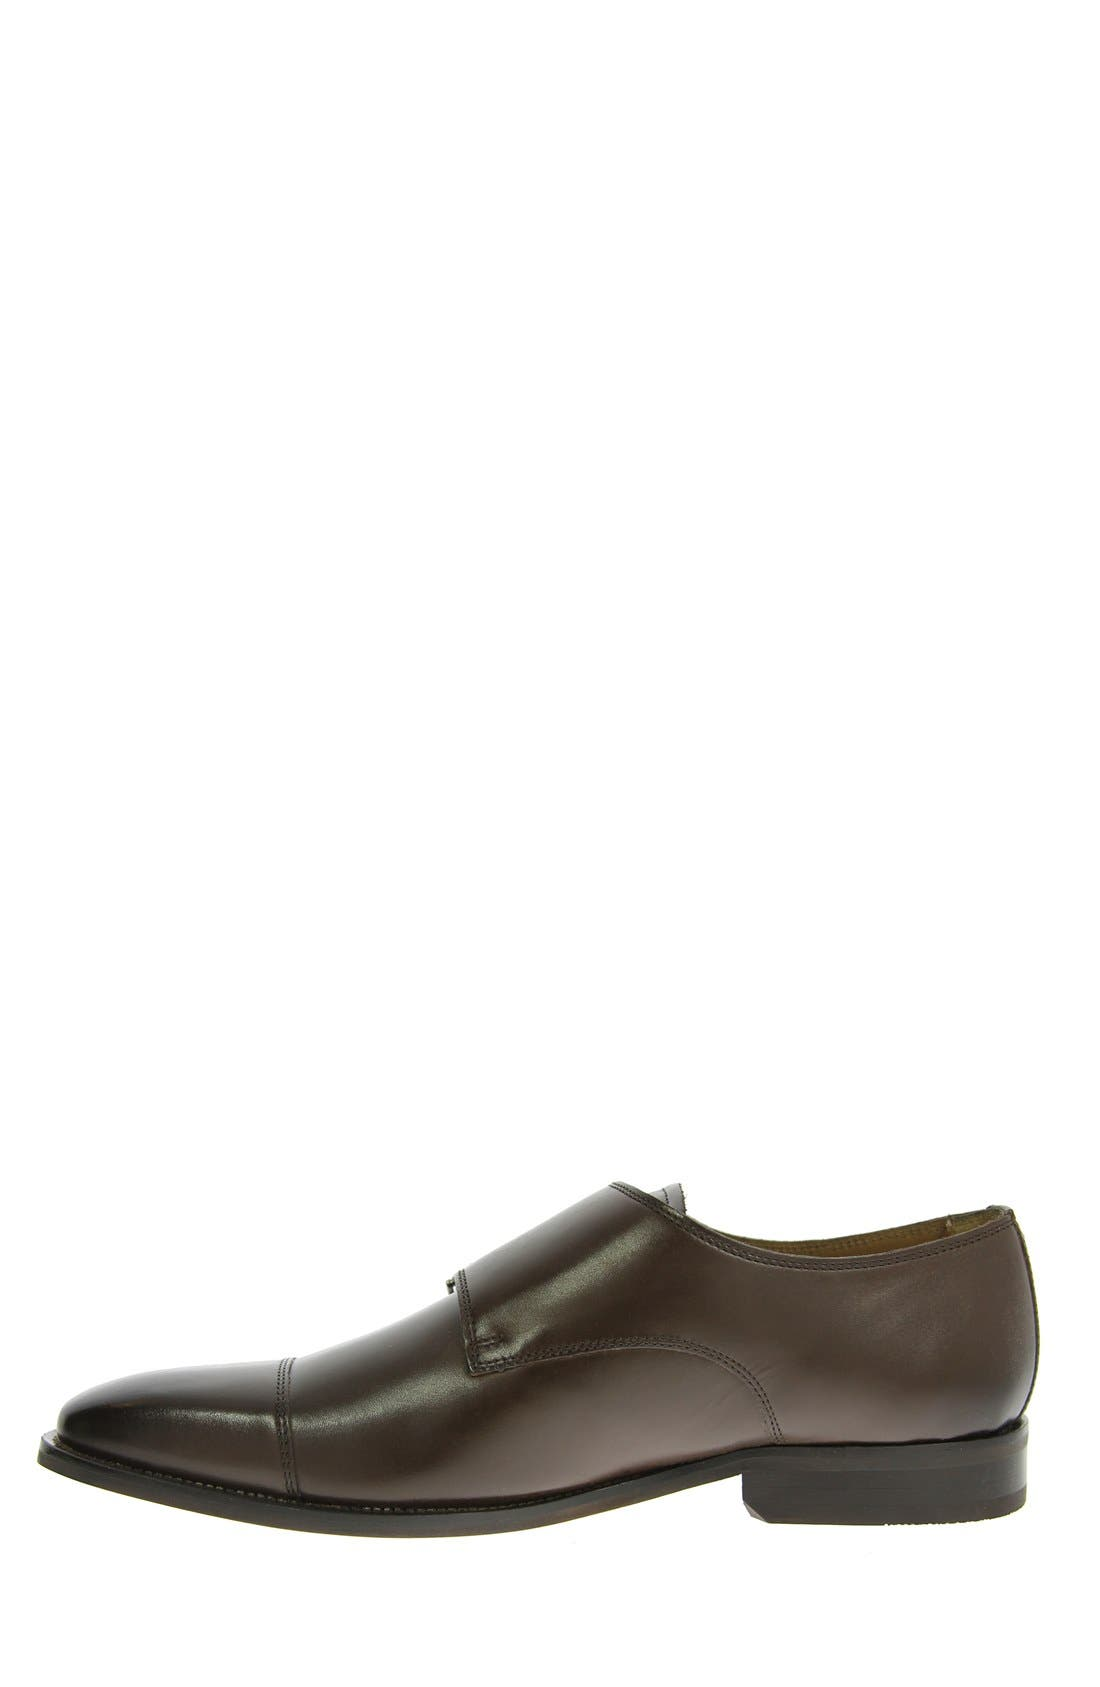 FLORSHEIM, 'Sabato' Double Monk Strap Shoe, Alternate thumbnail 4, color, BROWN